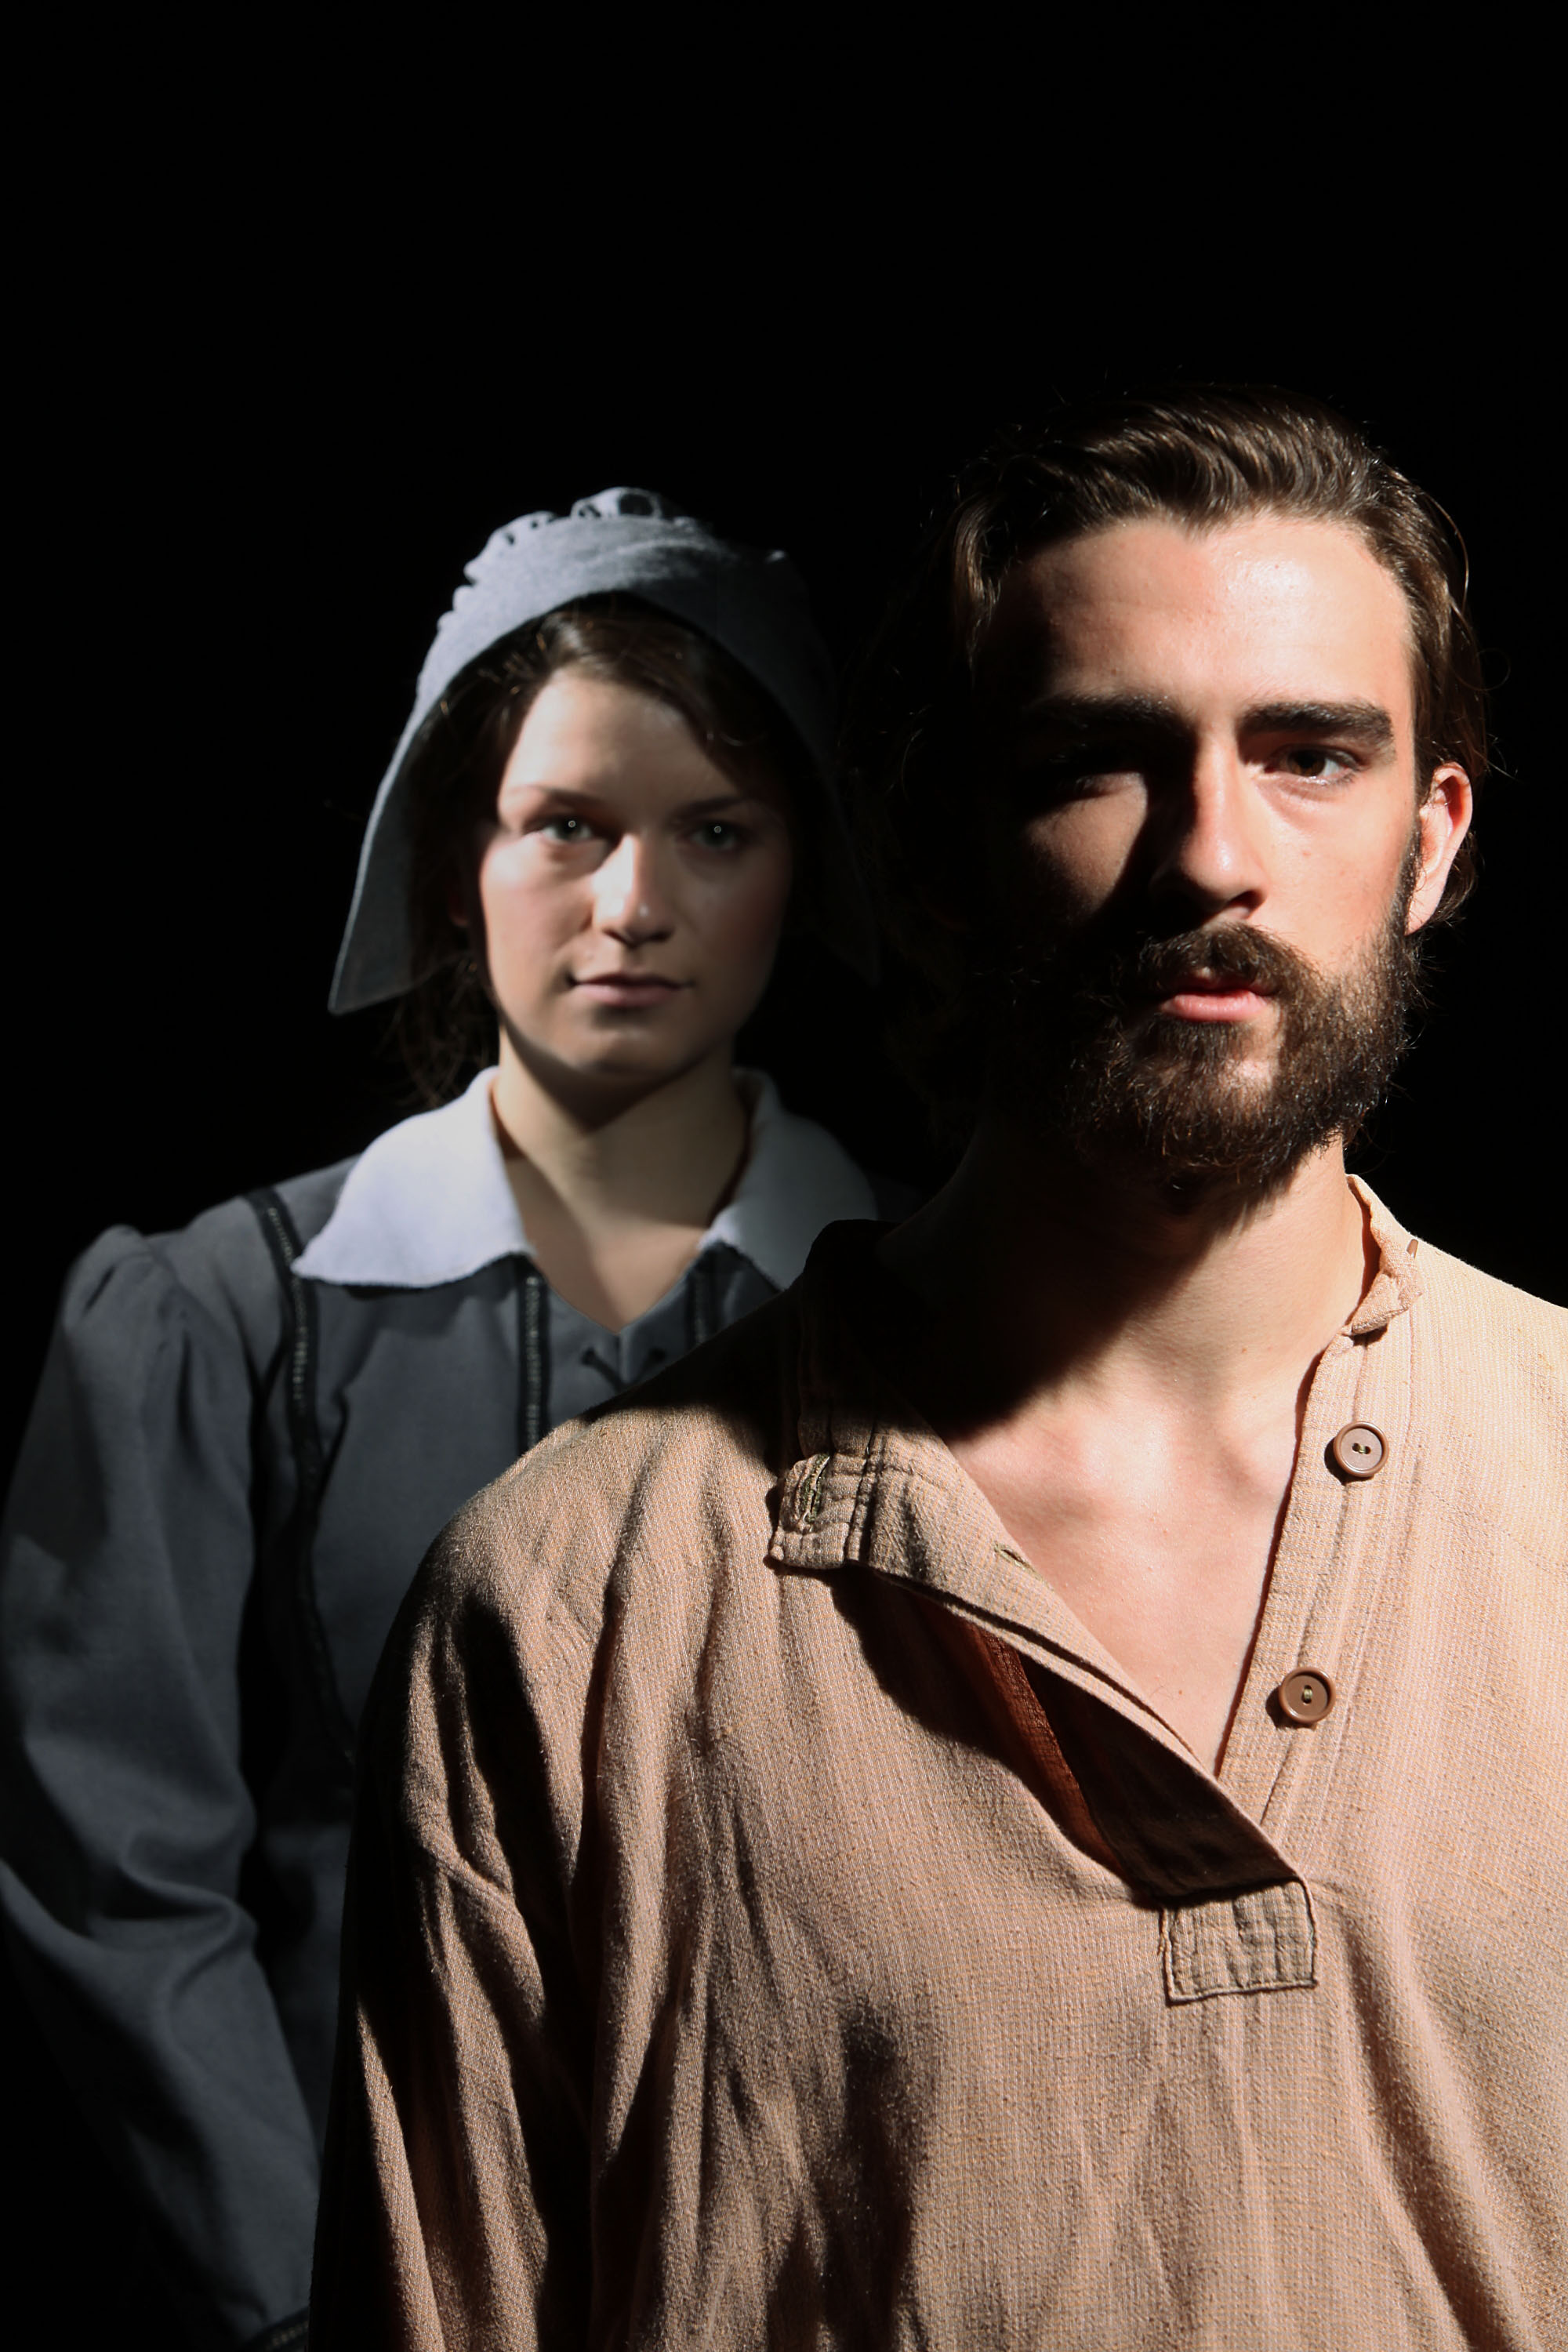 john procter and abigail williams essay Abigail williams is a villain who is fueled by the motivations of lust for john proctor, which brings out her manipulative strength and lying abilities.